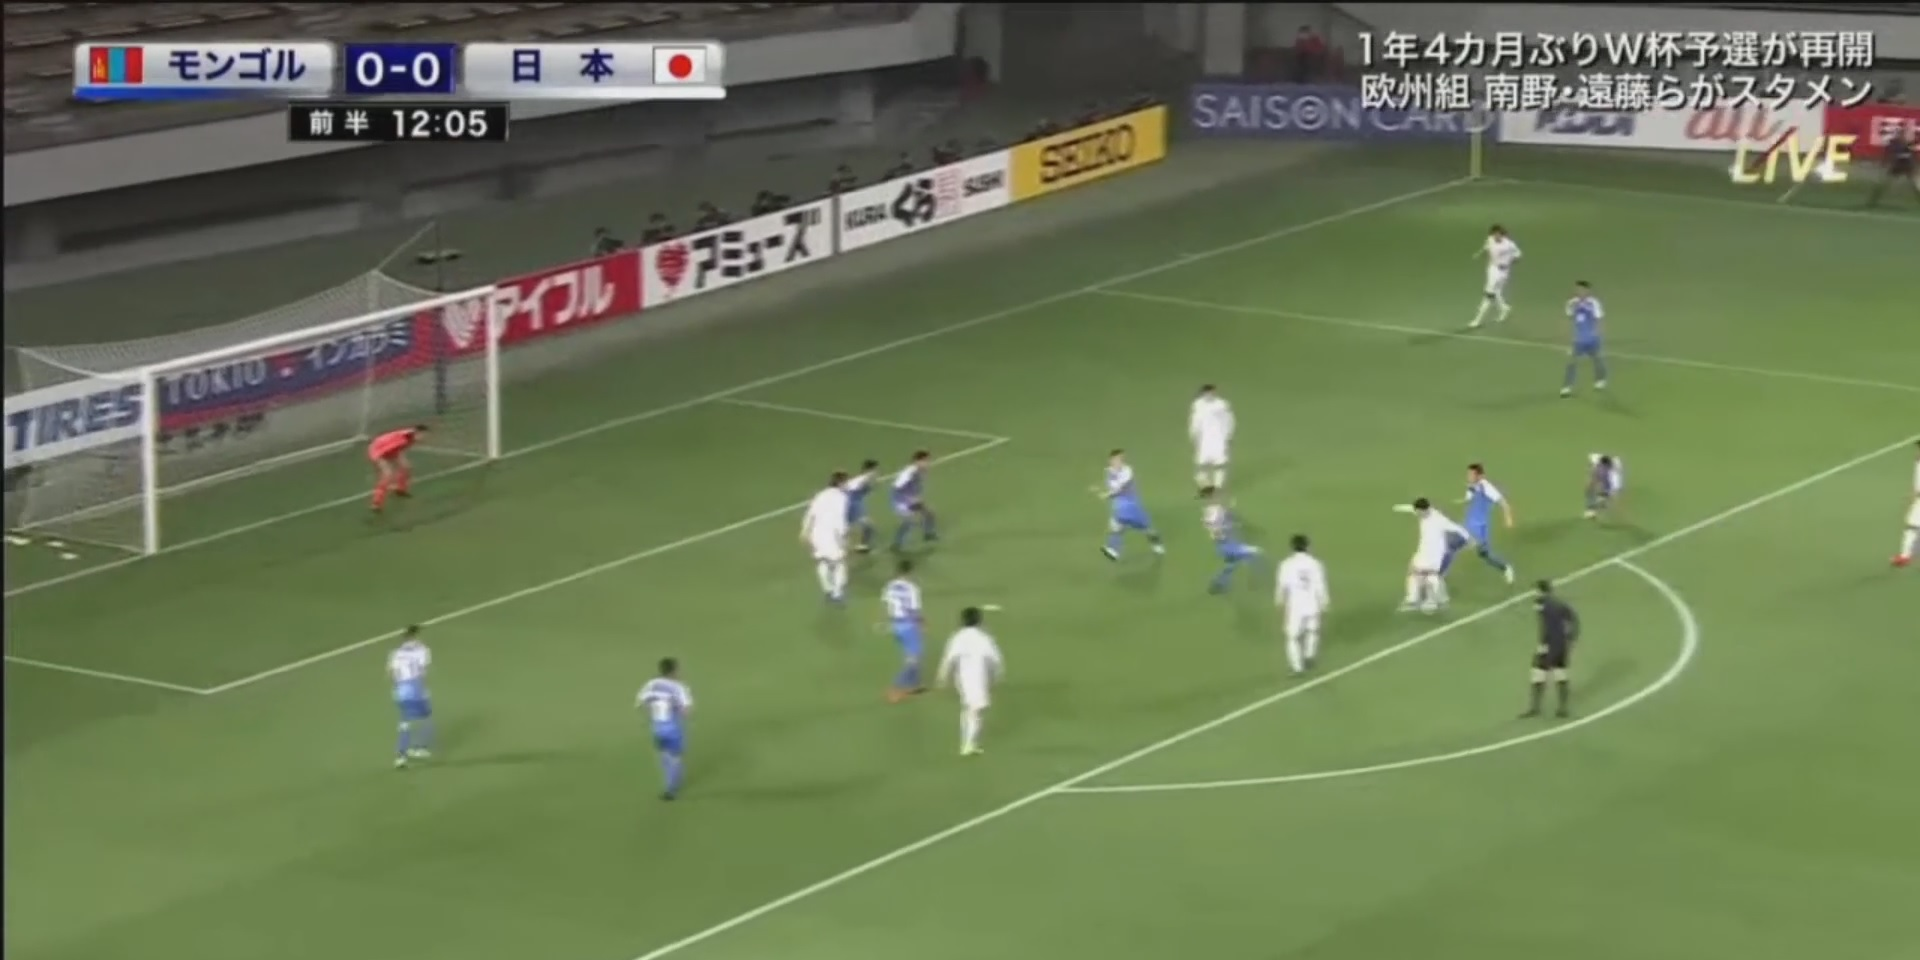 (Video) Minamino bags opener as Japan run riot in 14-0 thriller